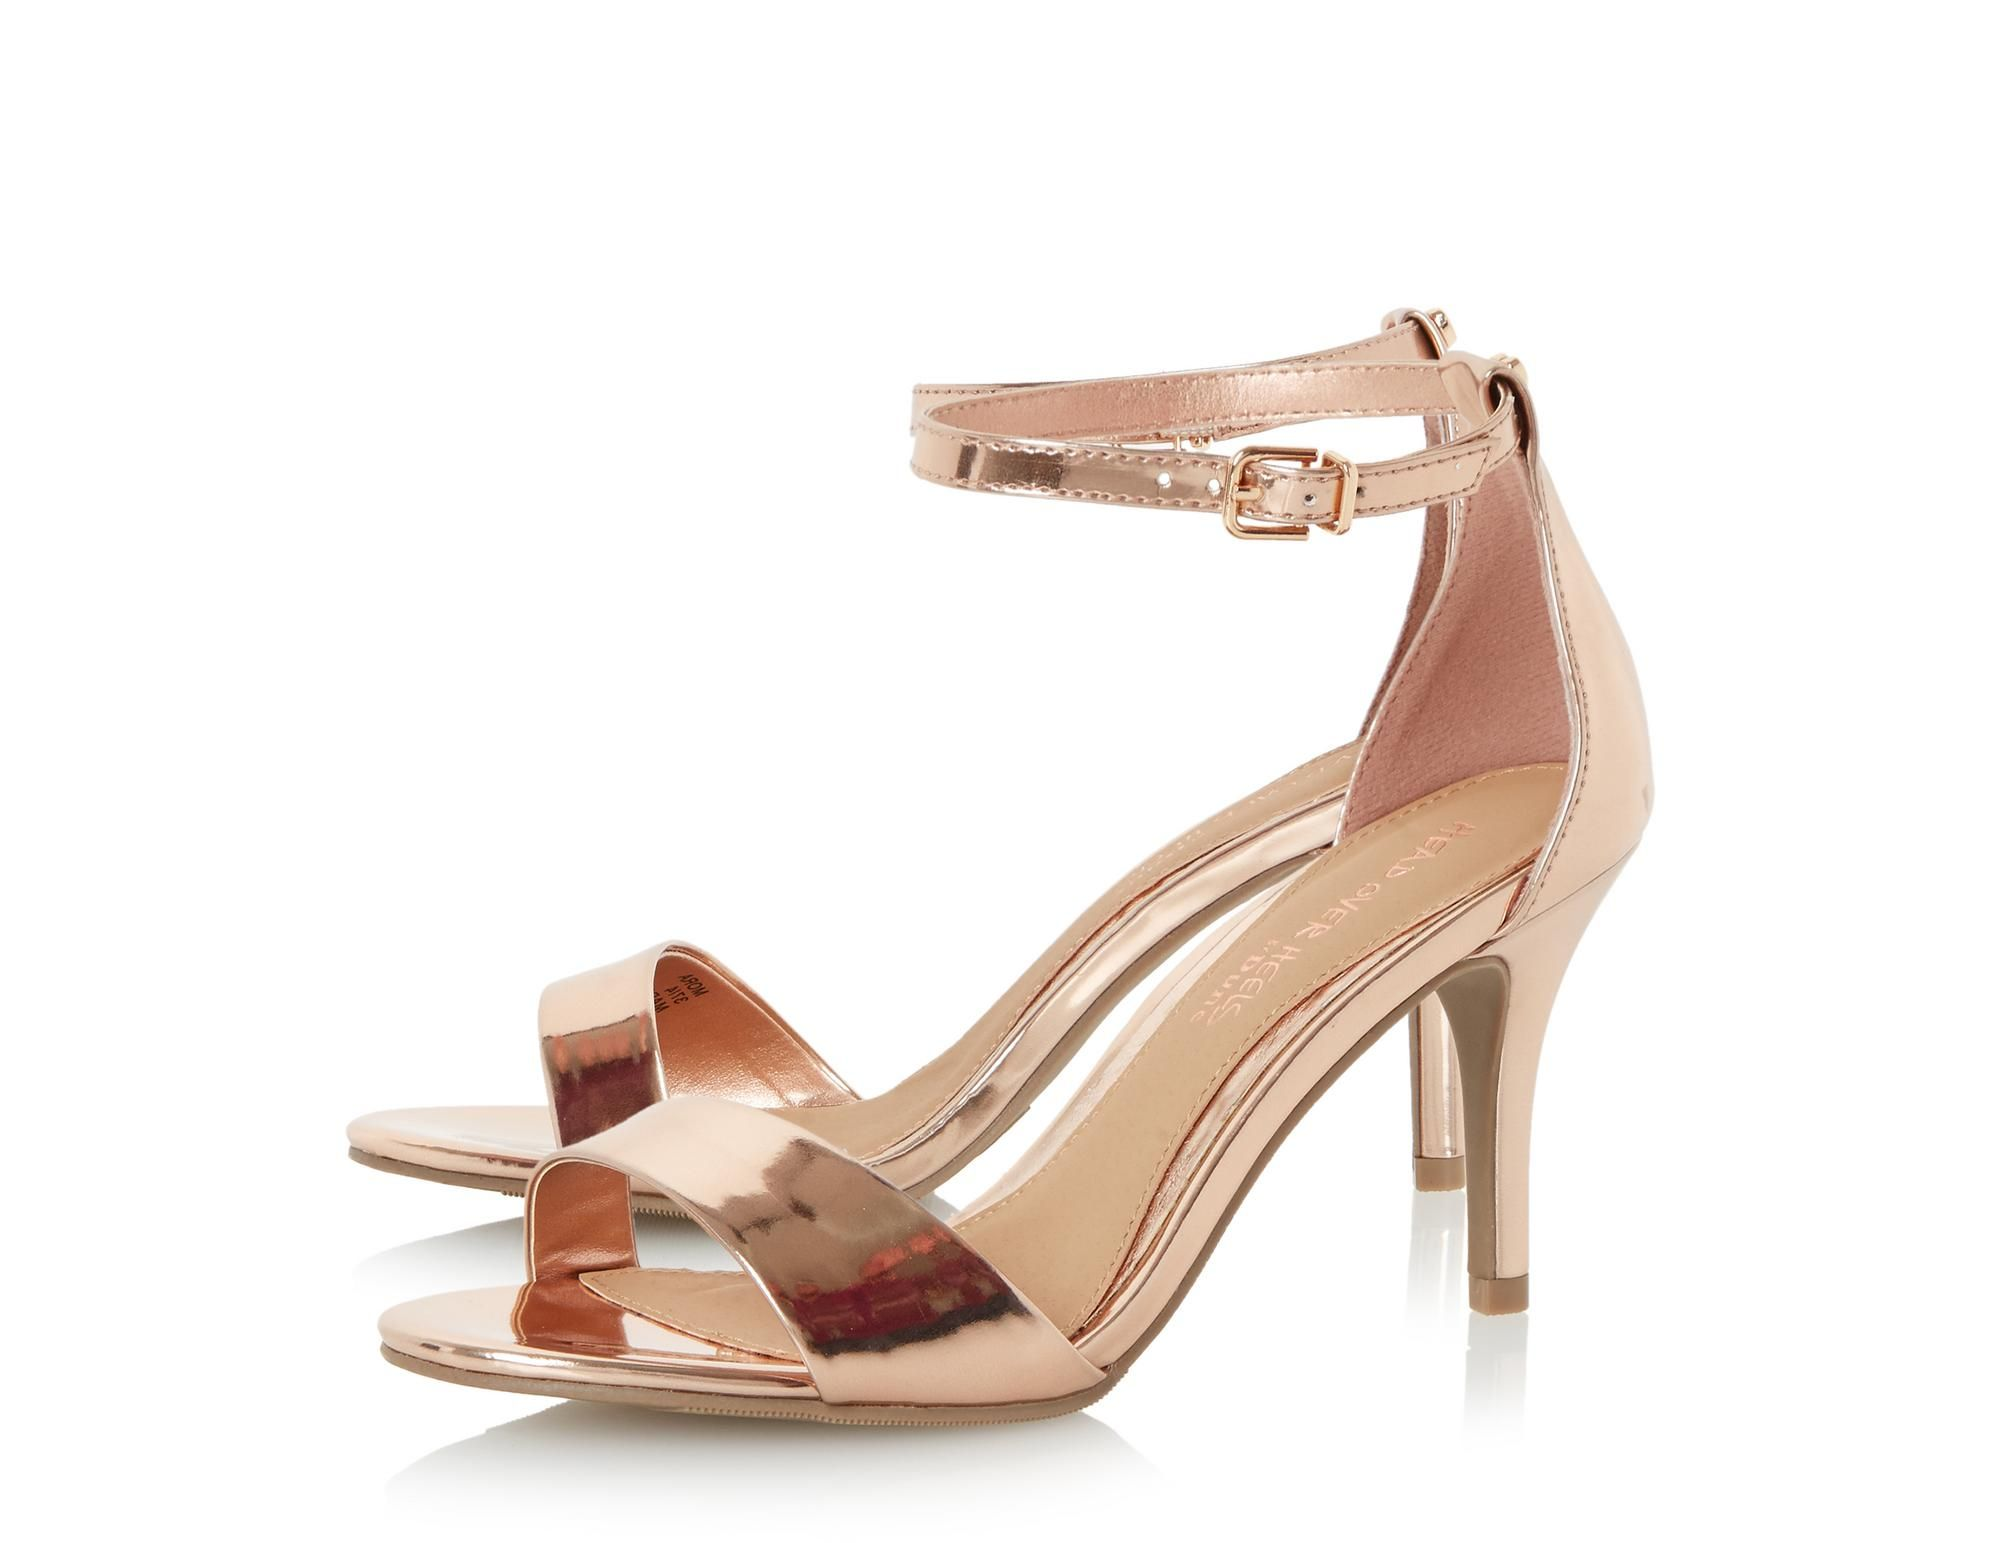 96773791a HEAD OVER HEELS LADIES MORA - Two Part Mid Heel Sandal - rose gold | Dune  Shoes Online